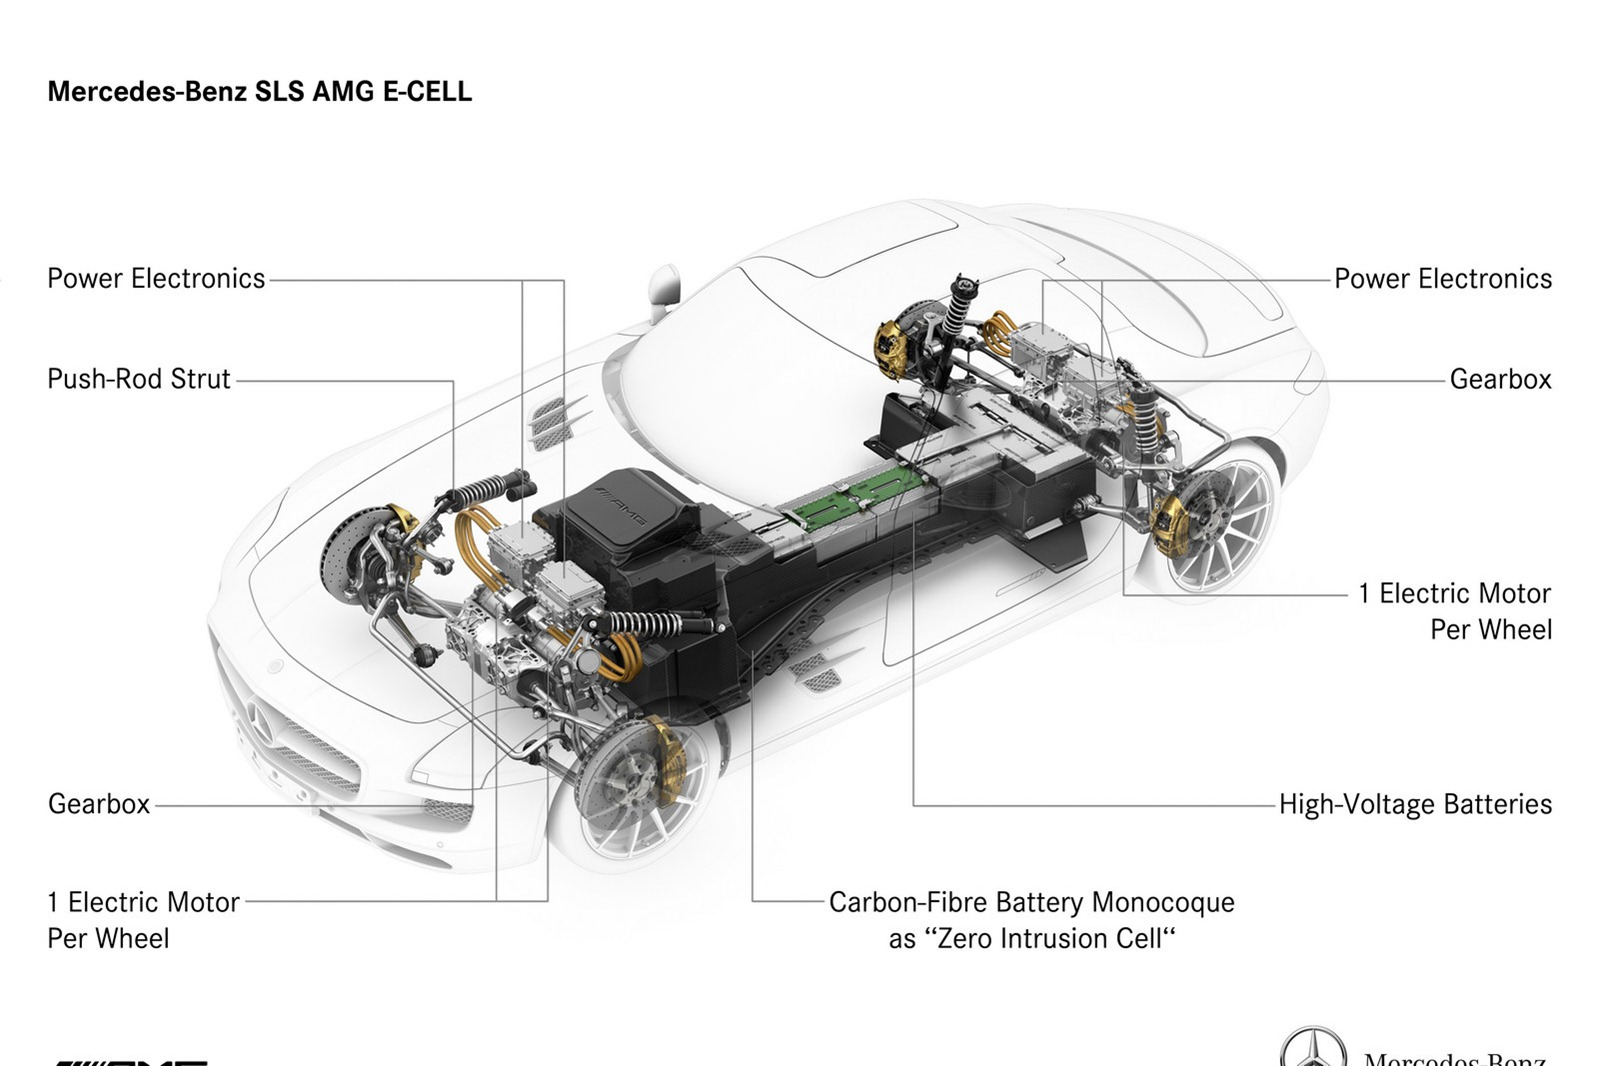 small resolution of mercedes reveal sls e cell s awd torque vectoring powertrain electric vehicle news